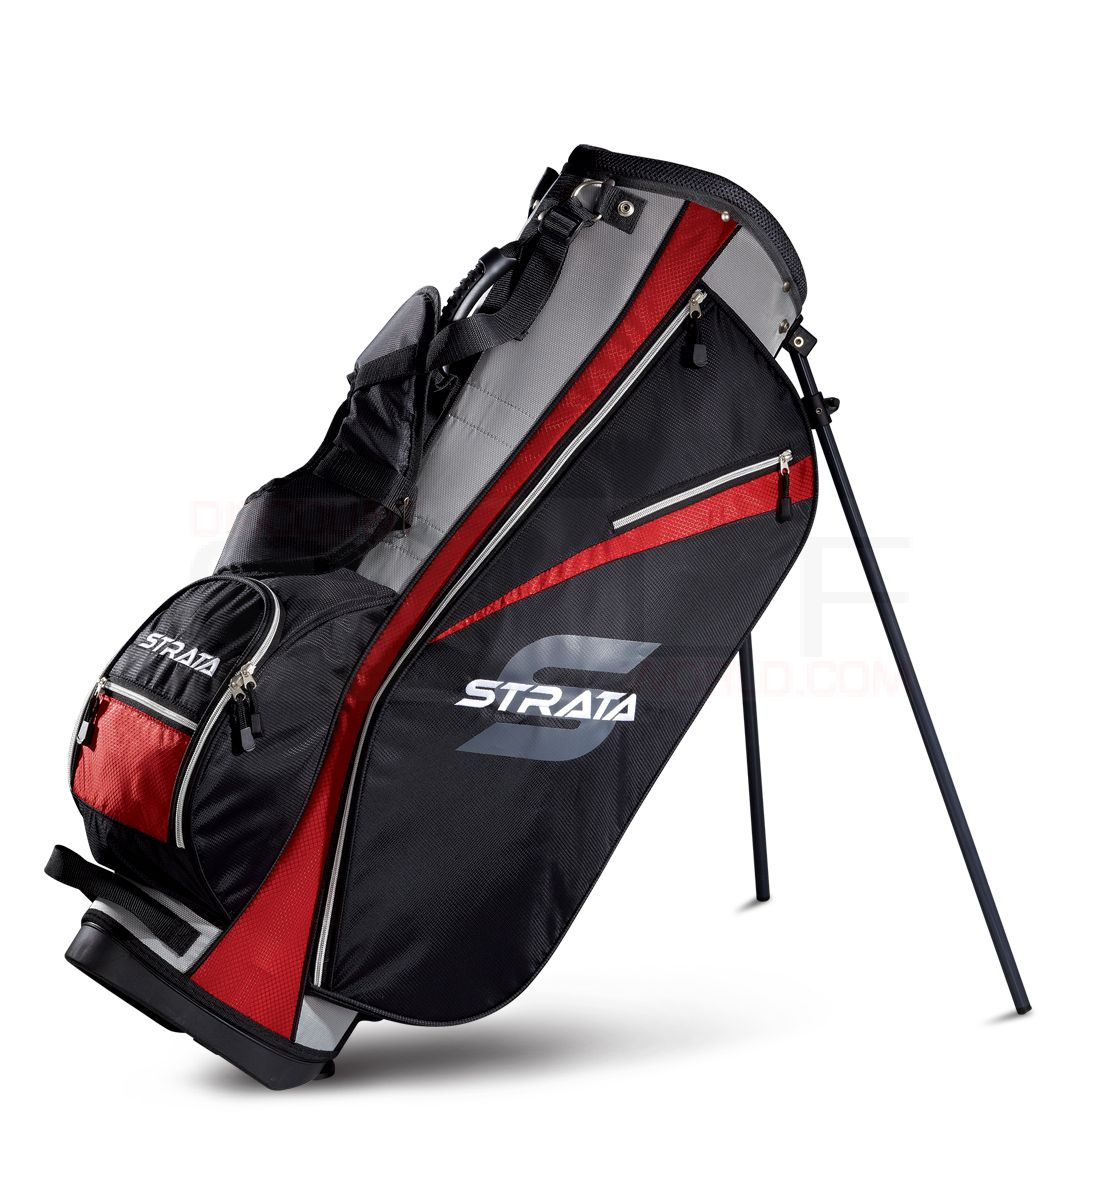 Callaway Strata Golf Club set bag